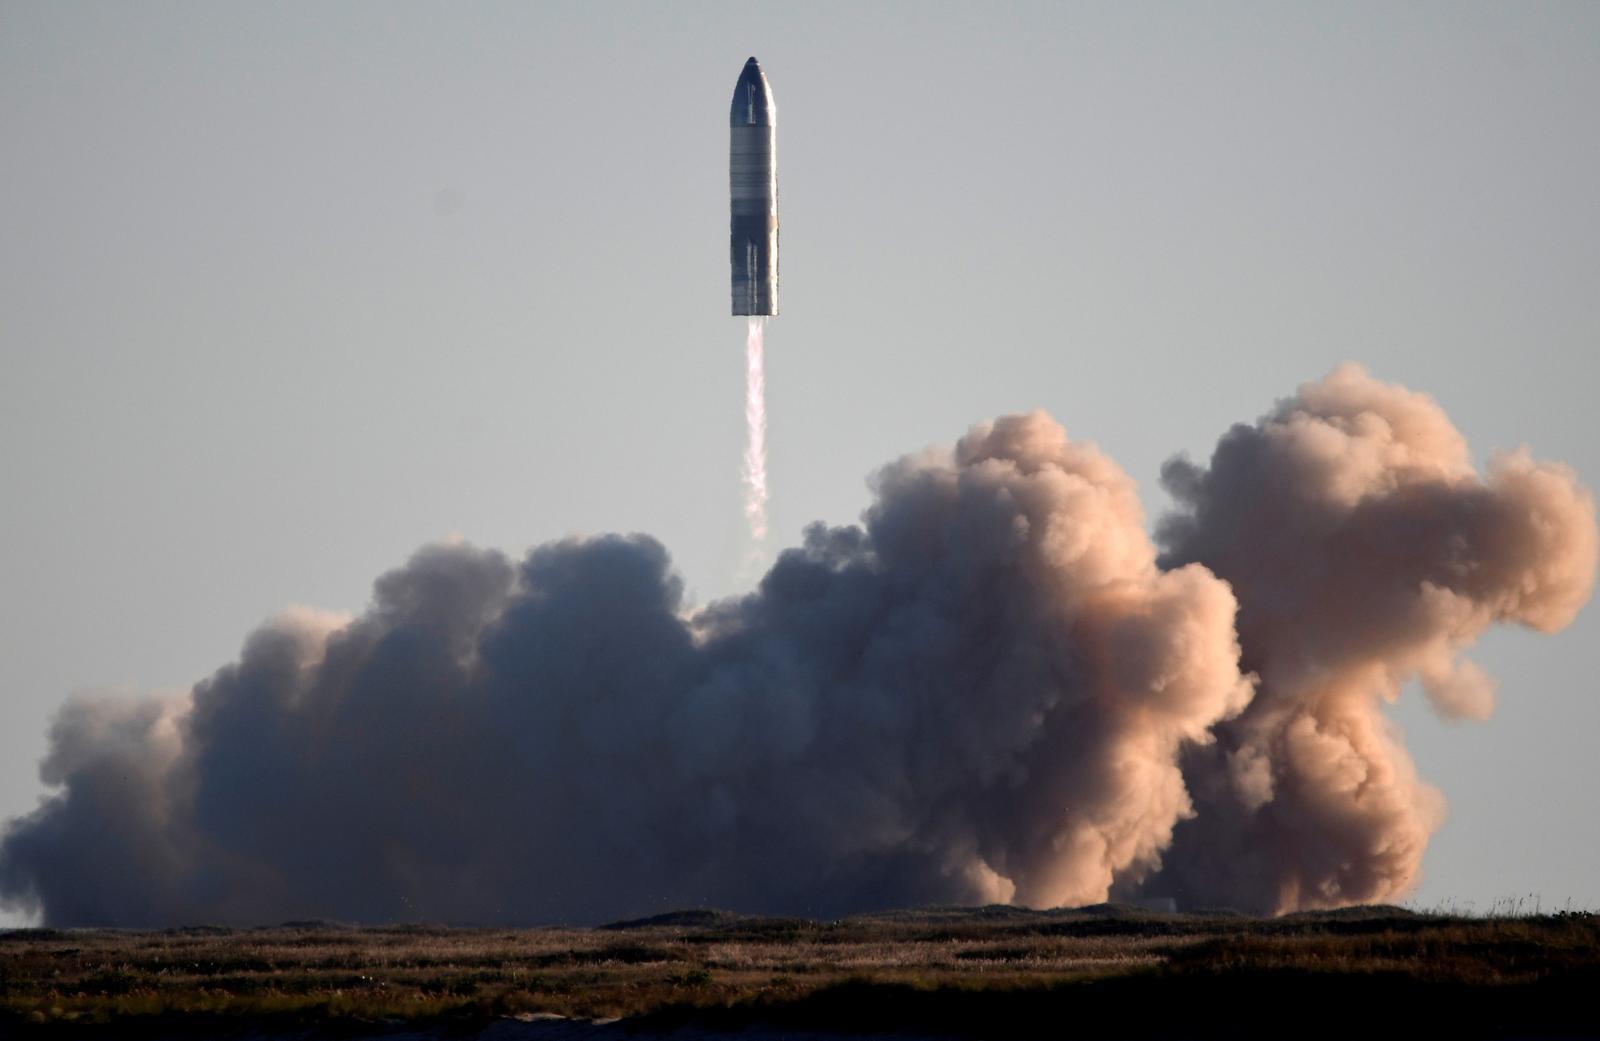 U.S. House panel probes SpaceX launch activities